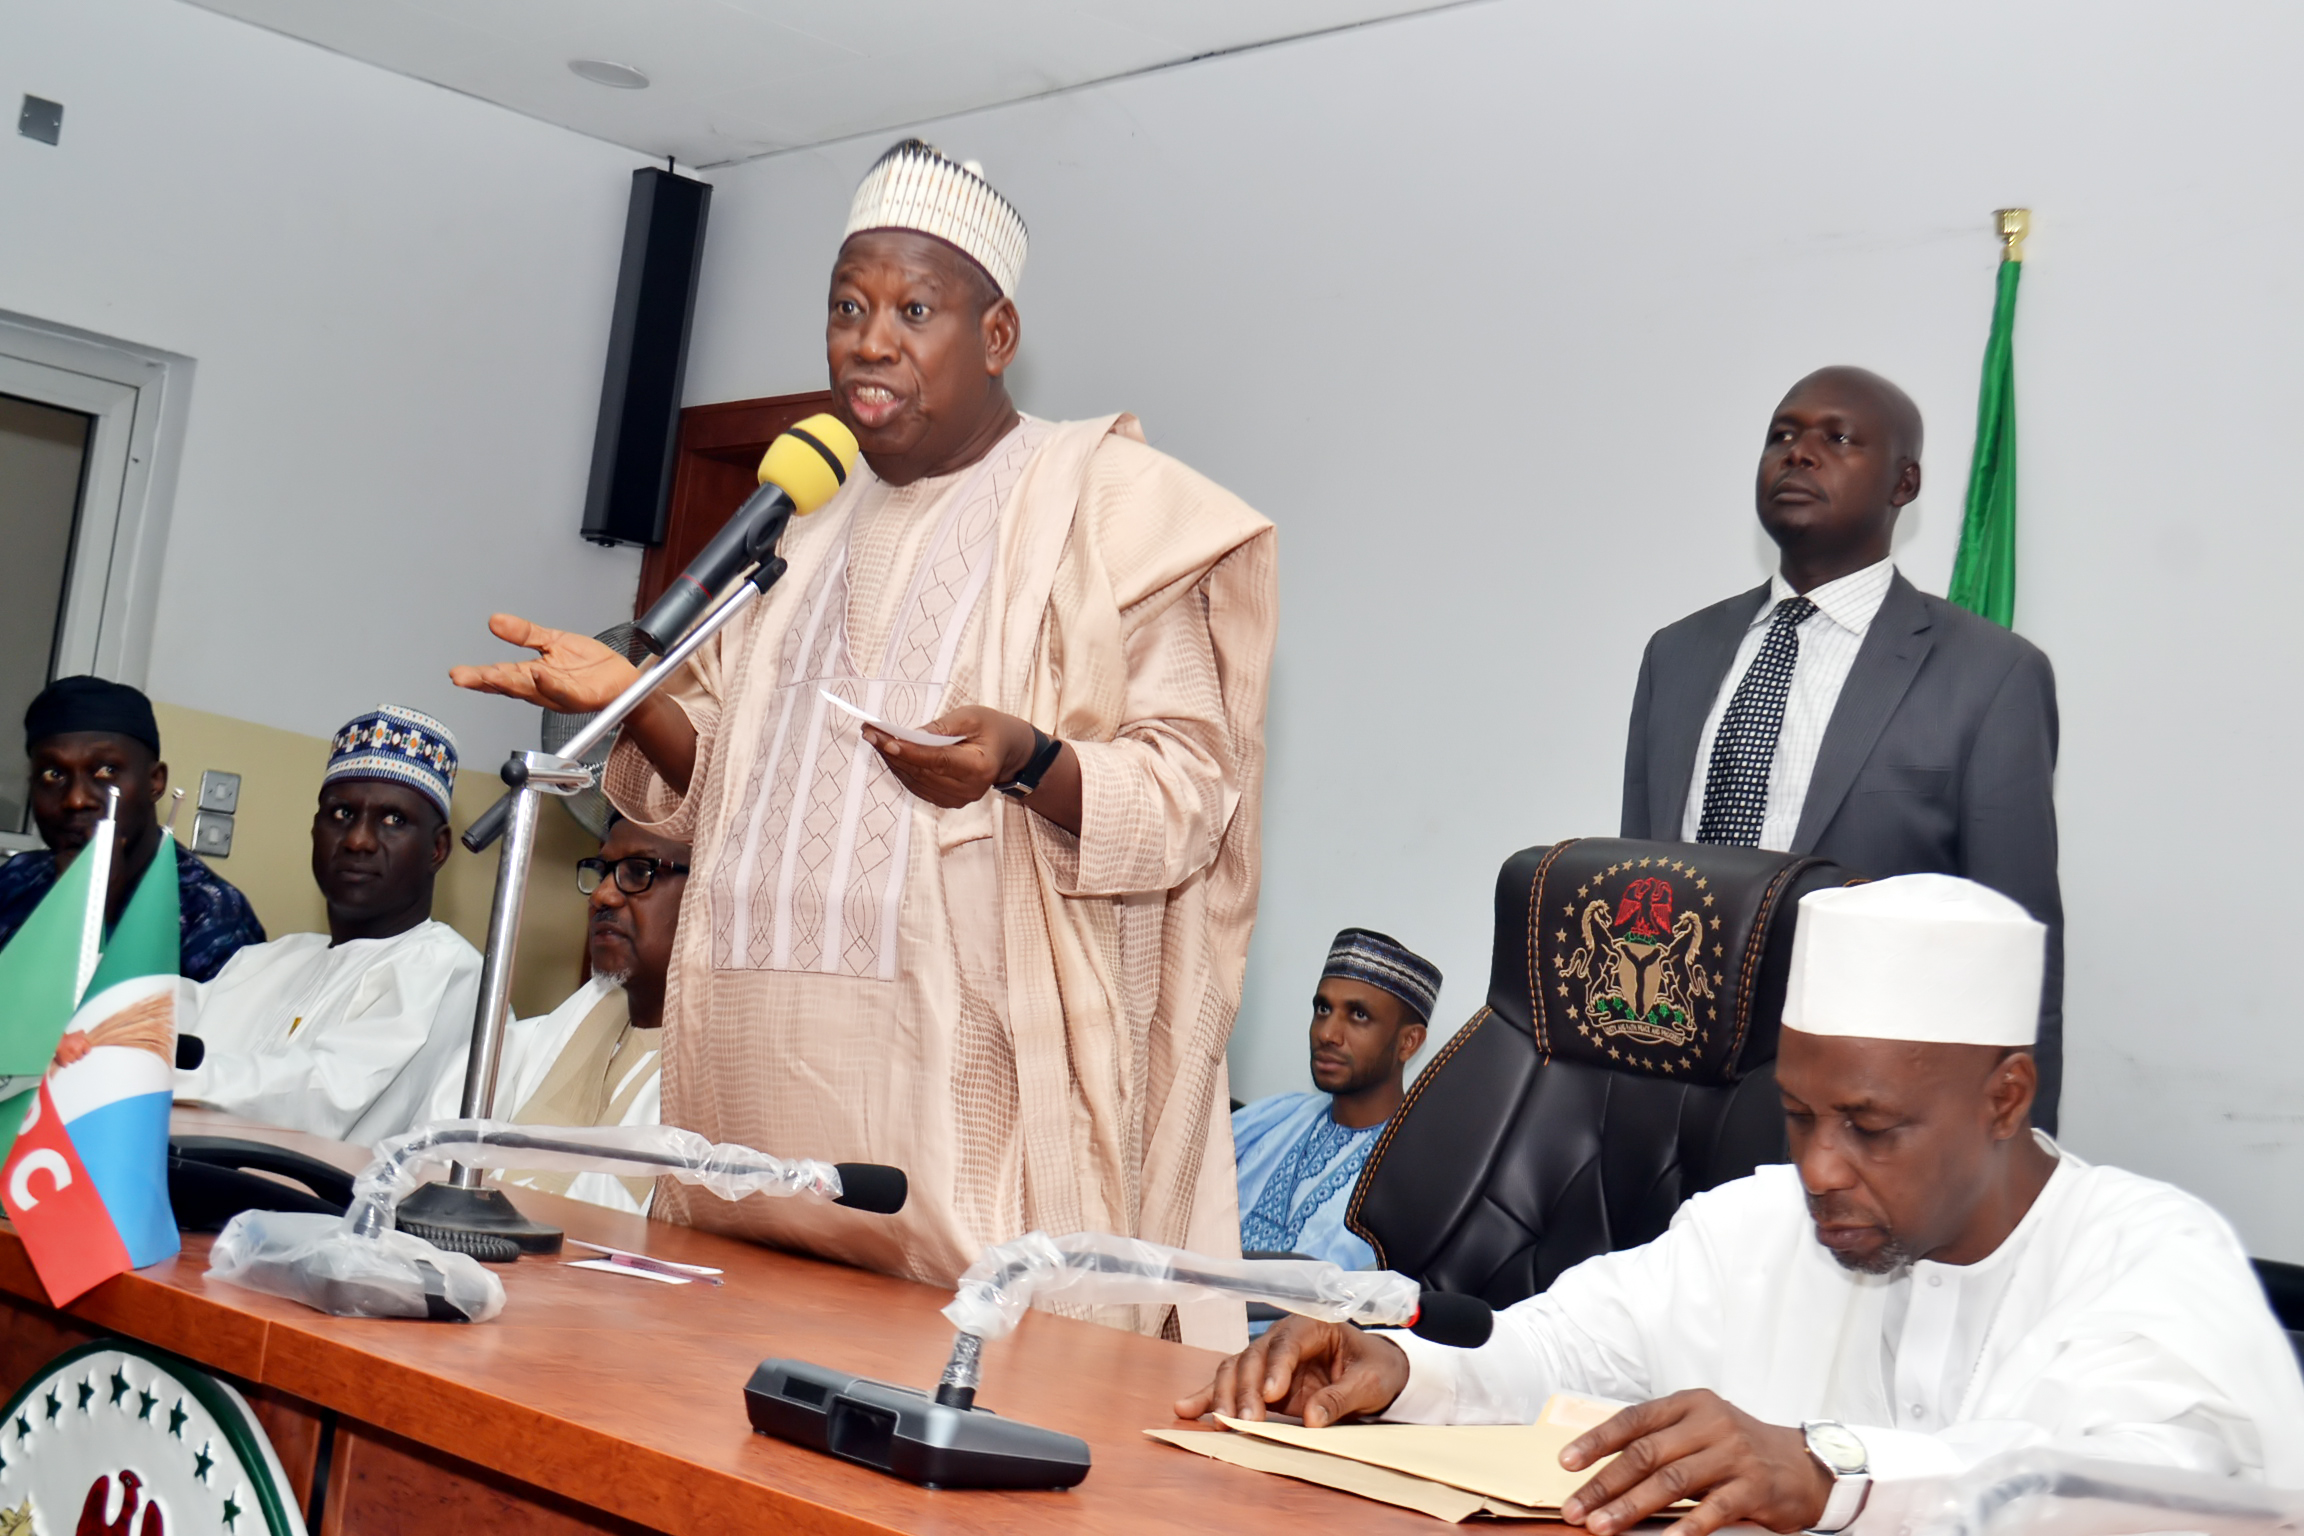 Kano State Governor, H.E Abdullahi Ganduje addresses MAN members at a courtesy visit